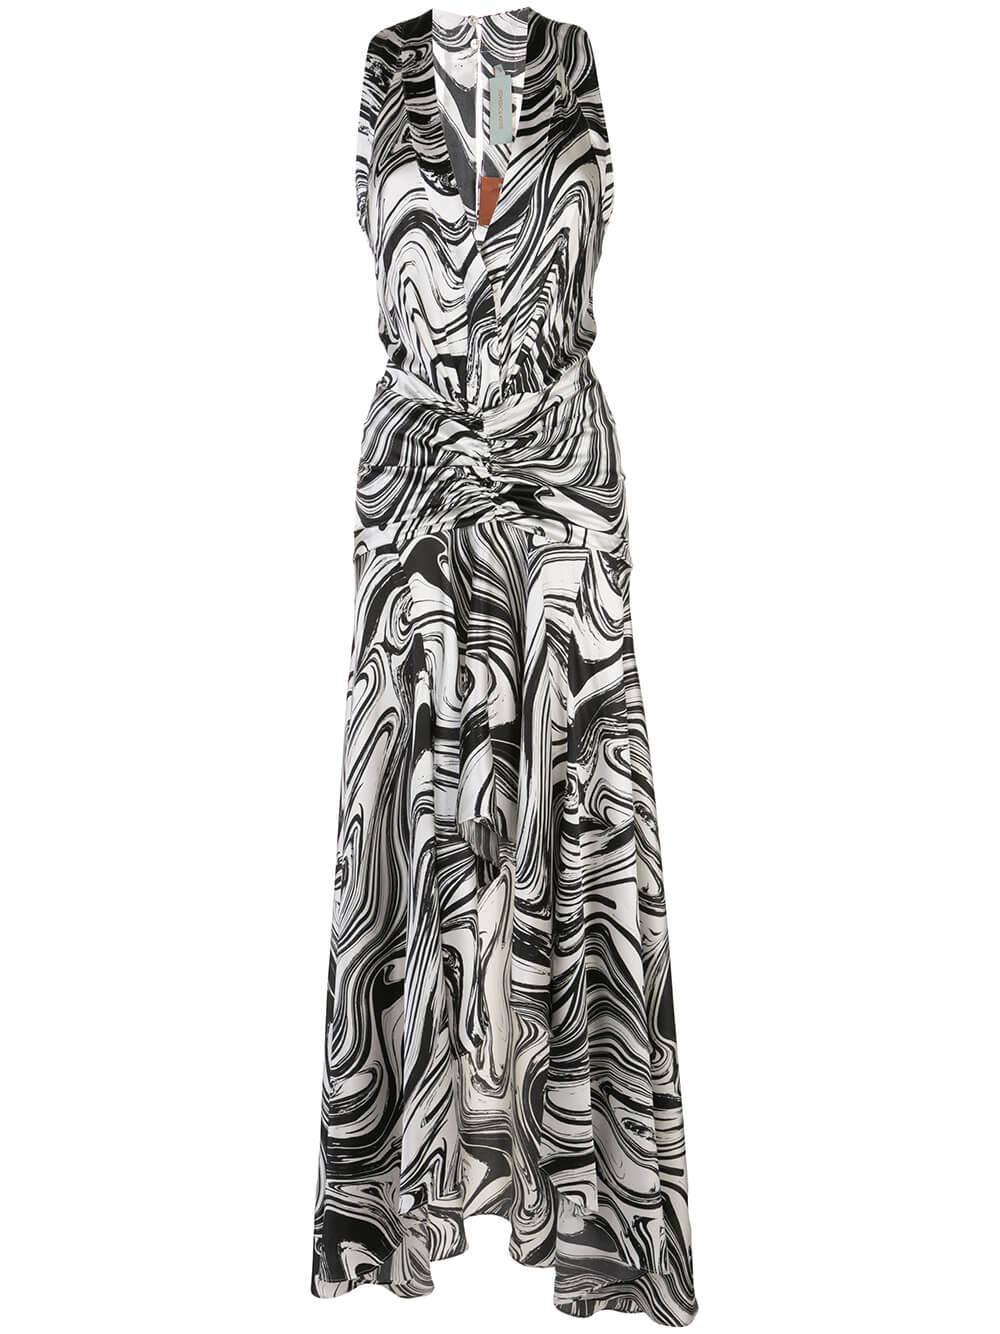 Marble Print Maxi Dress With Front Slit Item # EGLE-DRESS